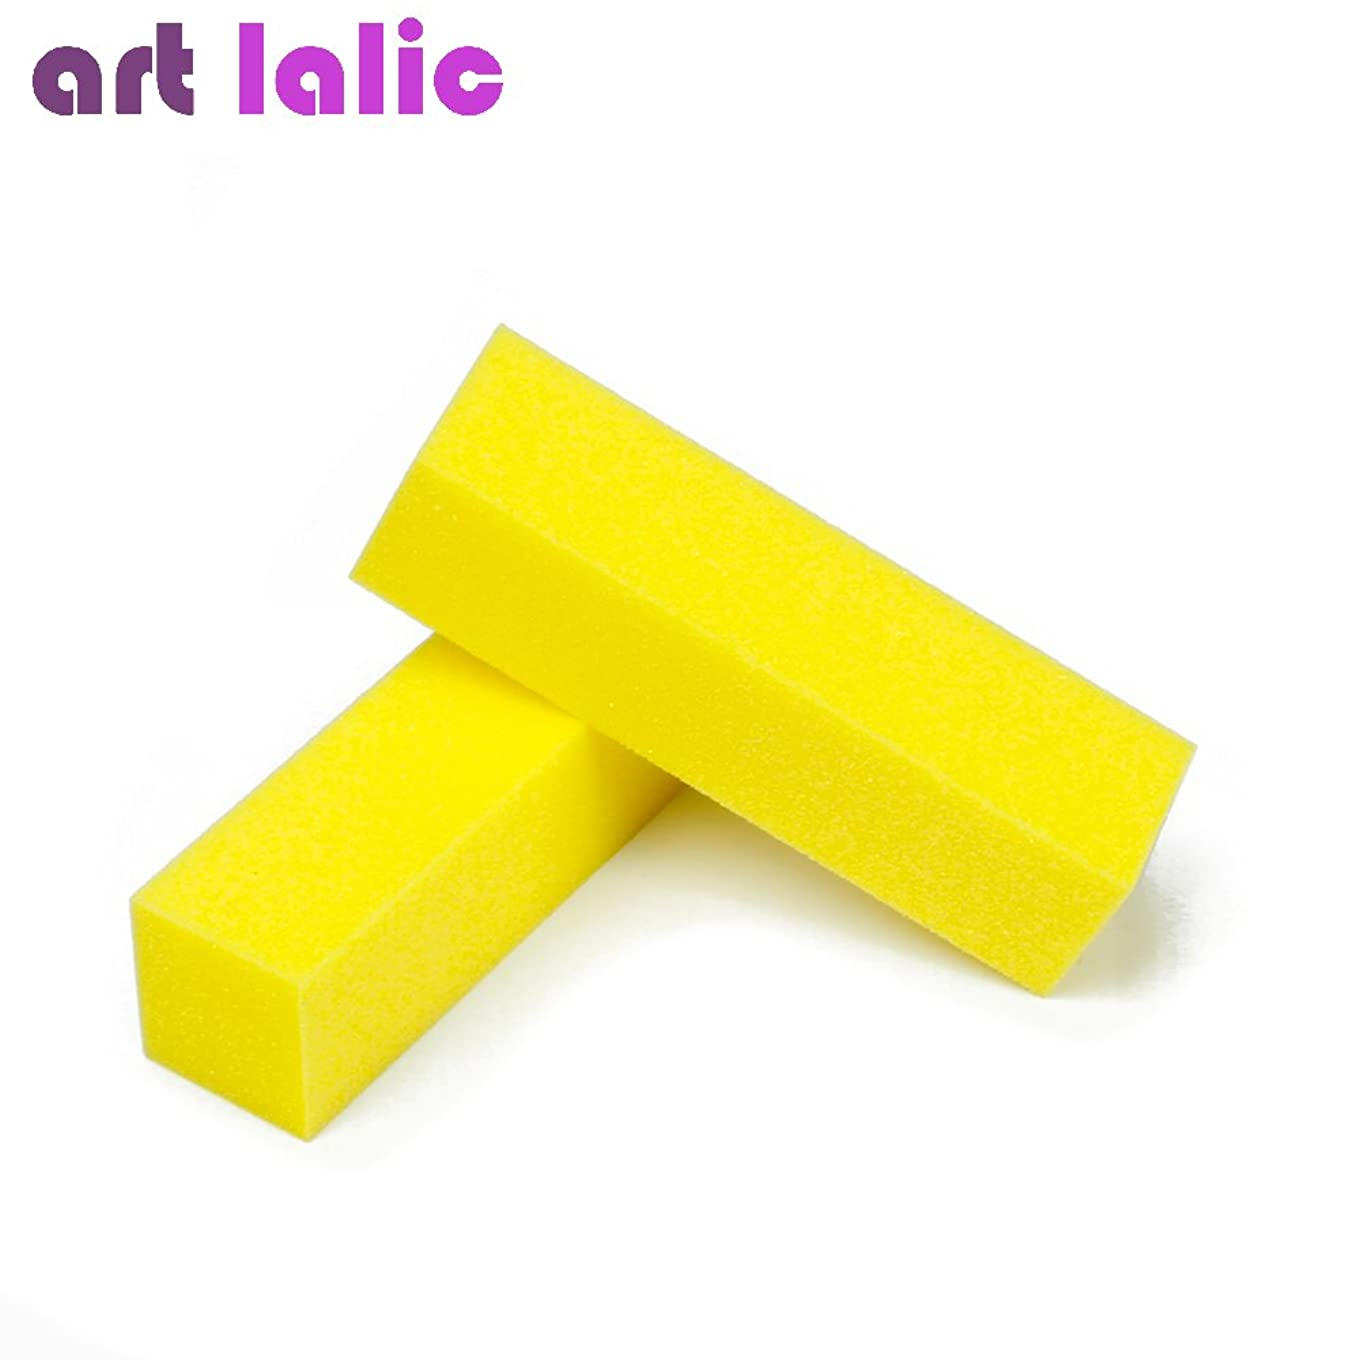 ギャング誘惑リーダーシップArtlalic 10 Pcs Nail Art Buffer Buffing Sanding Block Files Manicure Pedicure for Nail Salon, DIY Home Manicure